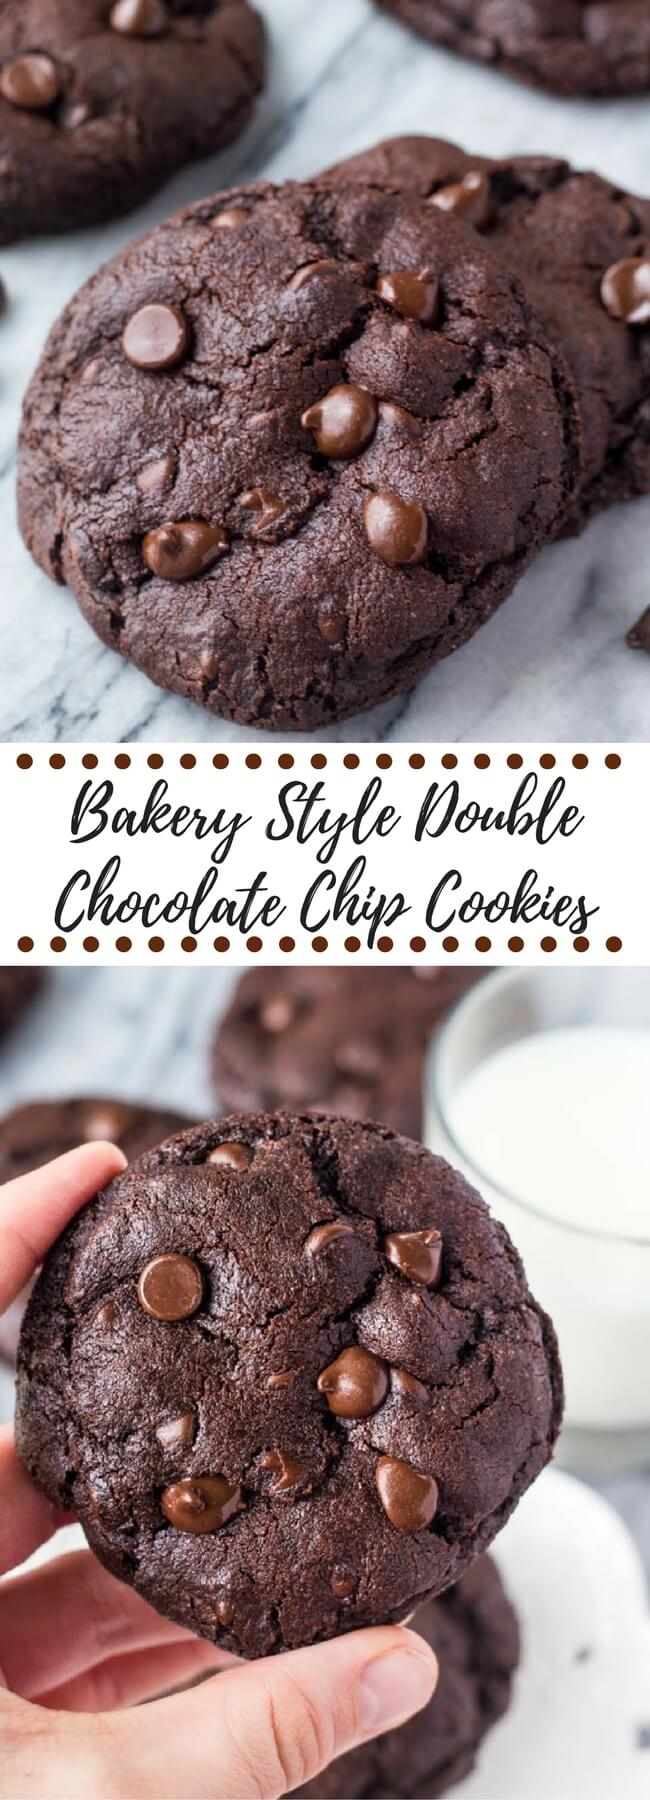 Bakery Style Double Chocolate Chip Cookies - Just so Tasty